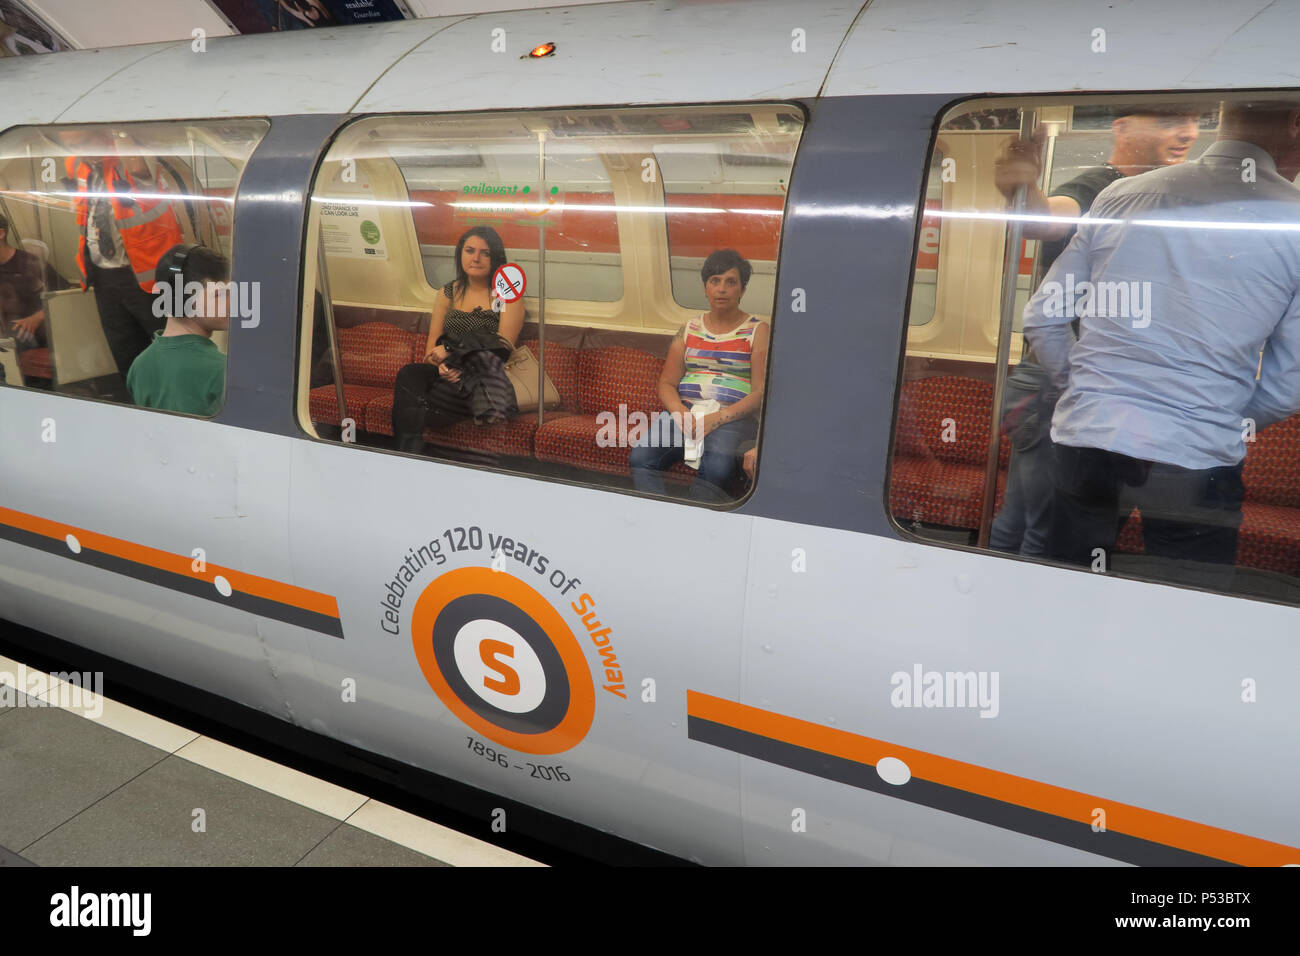 Passengers on the Glasgow subway, SPT underground railway, city centre train / railway, Strathclyde, Scotland, UK - Stock Image